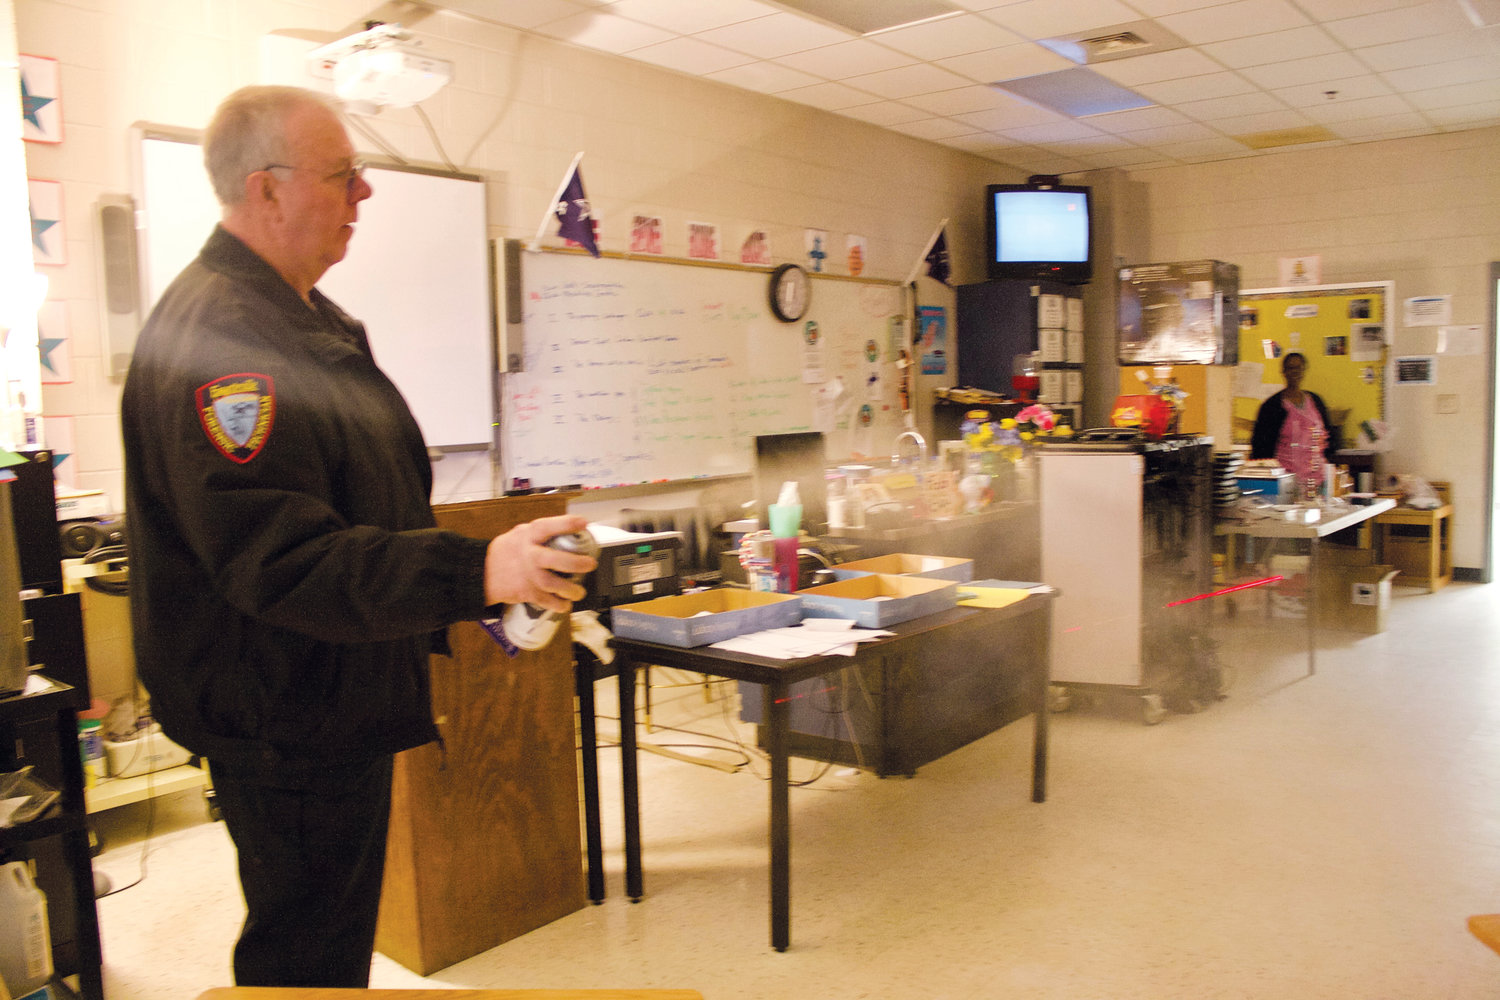 Allen Bricker, a forensic supervisor at the Fayetteville Police Department, speaks to students in Stacie Siebert's honors biotechnology class at Overhills High School.